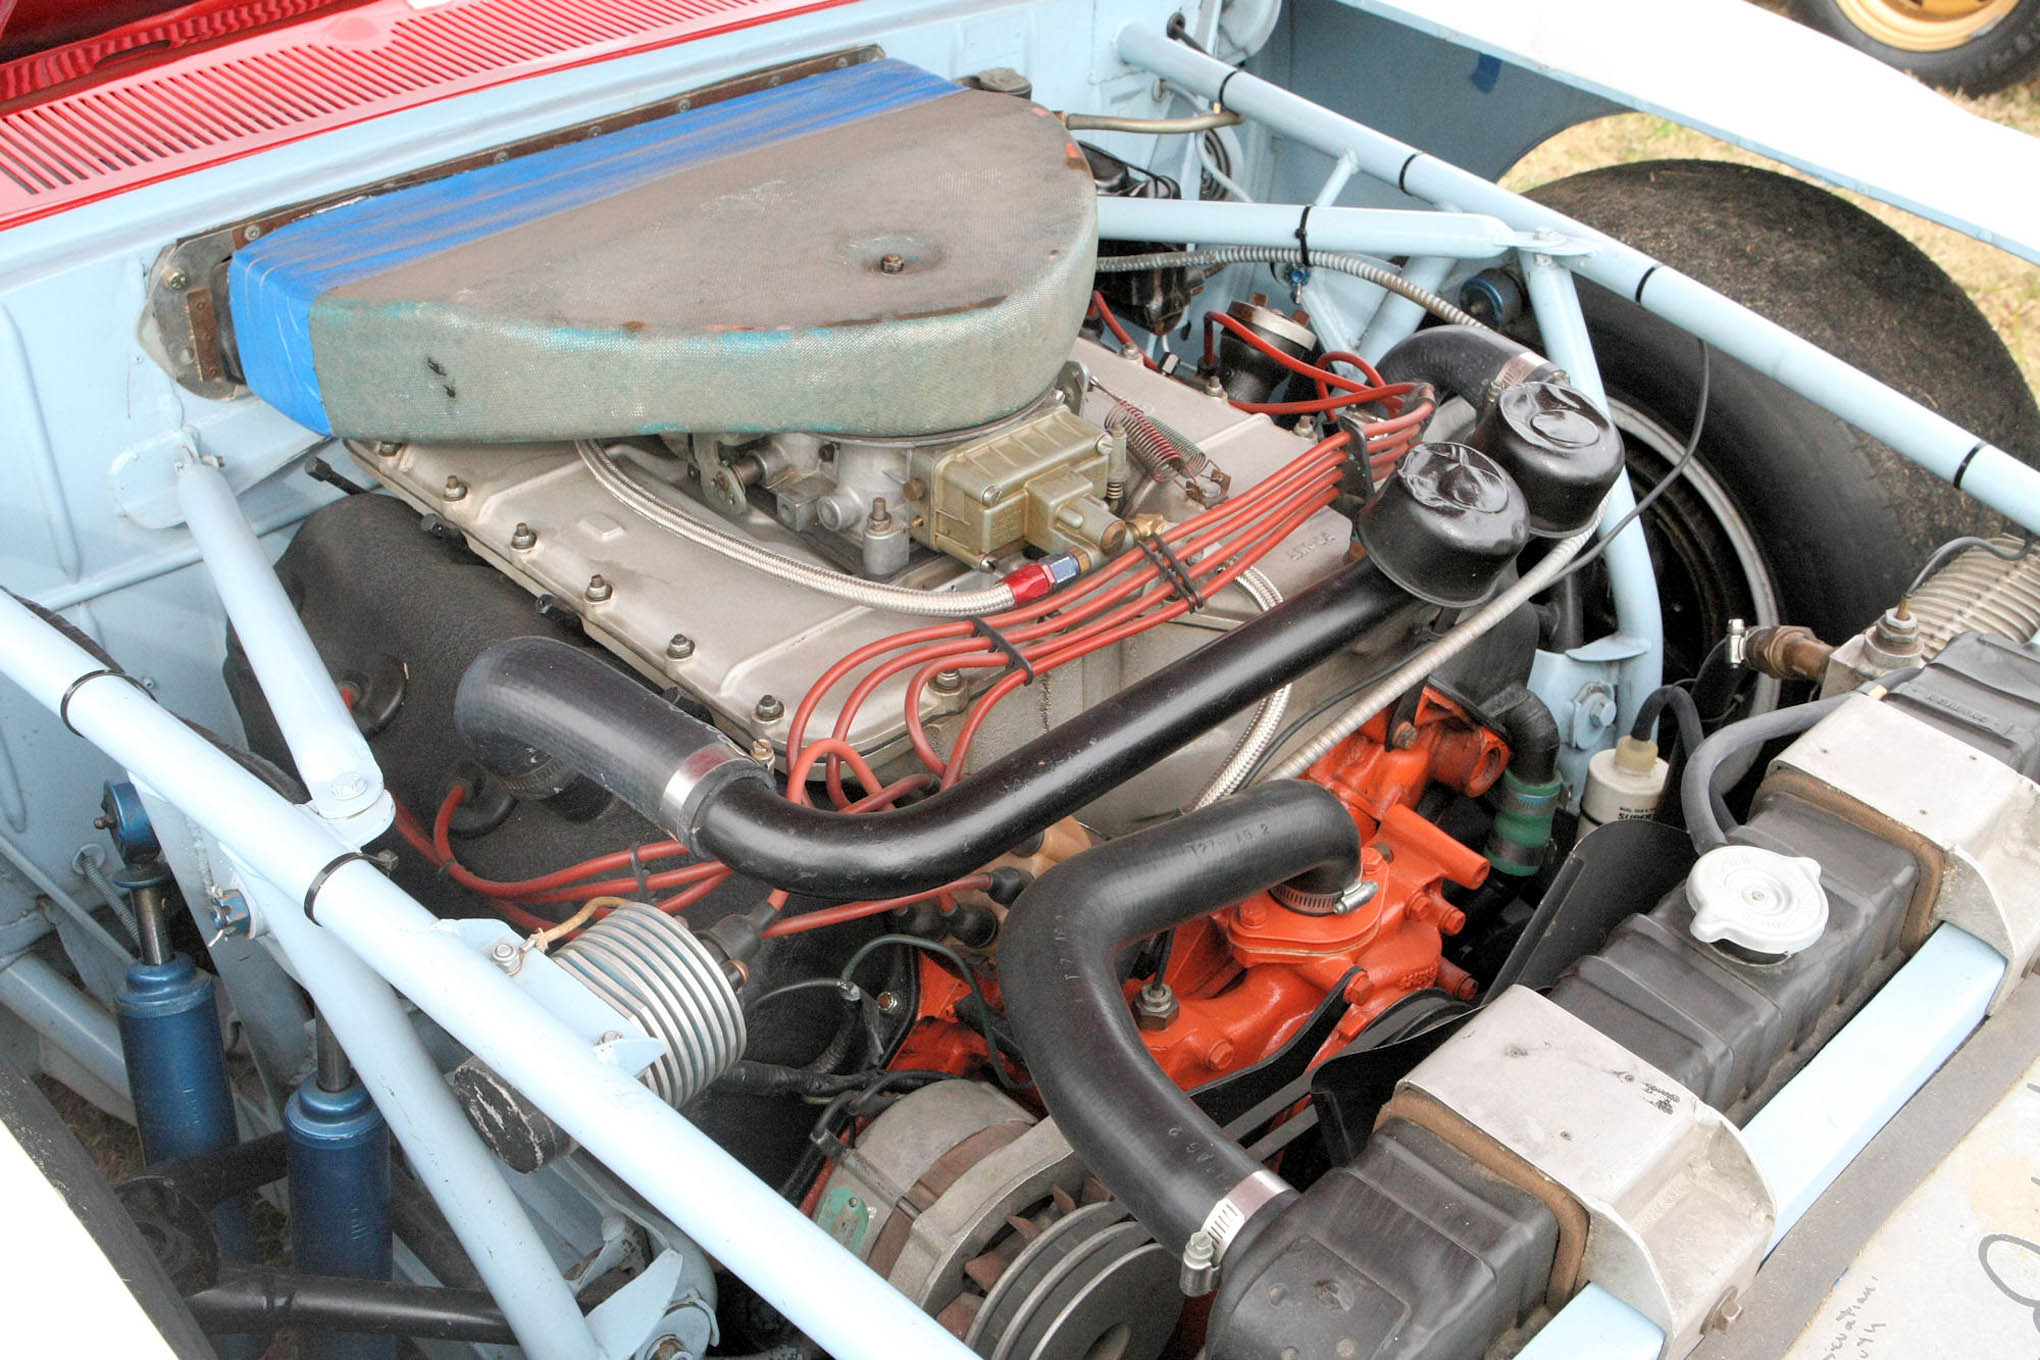 The Dodge early 1970's Big Block Hemi – a very successful engine in its day.